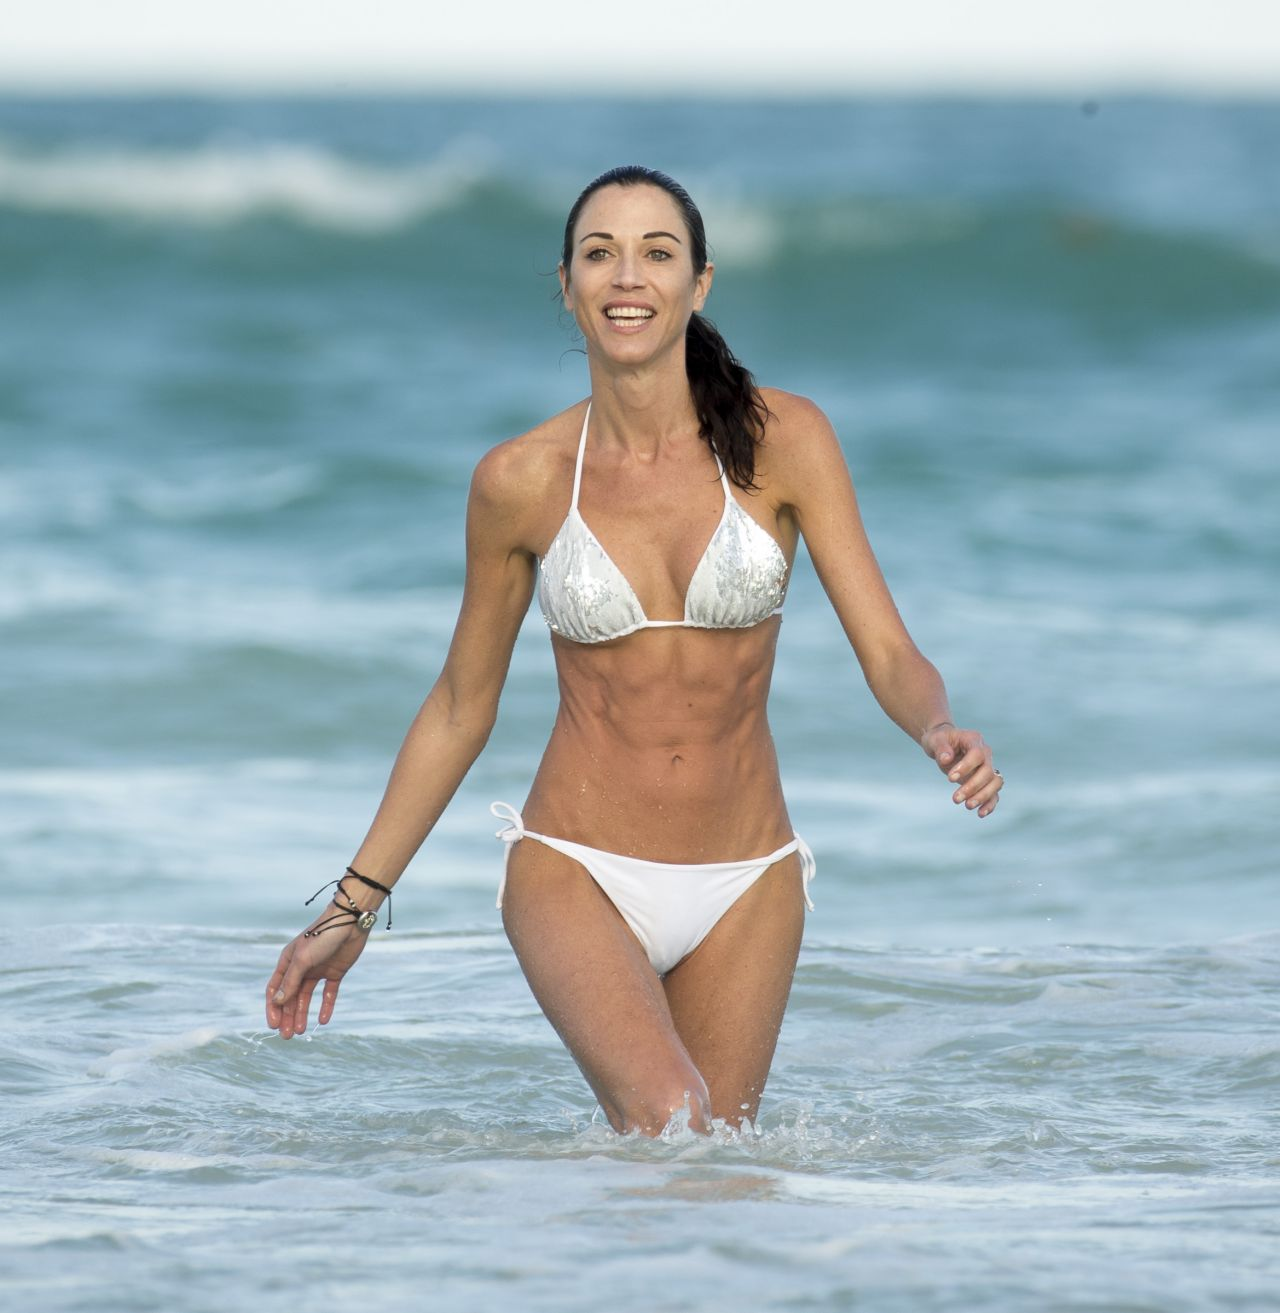 Federica Torti in White Bikini - on Vacation in Miami - March 2014